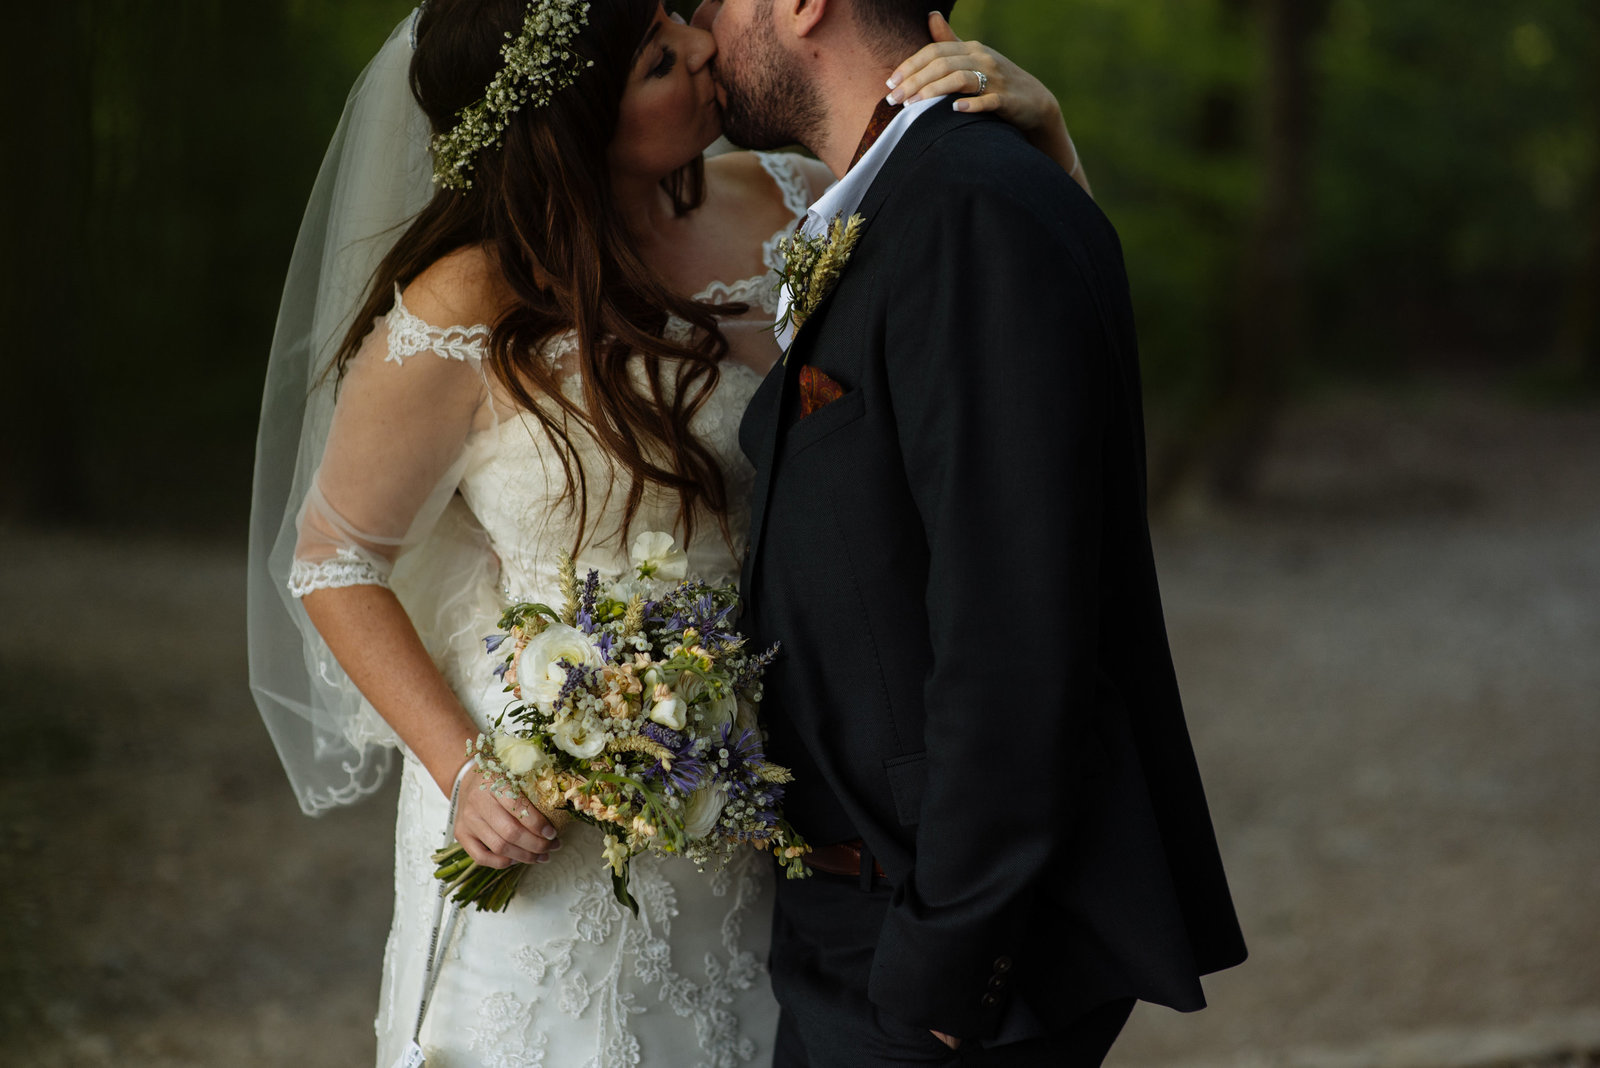 Bride and groom kissing at Otley Chevin after their wedding at the Cheerful Chilli. Leeds wedding photography